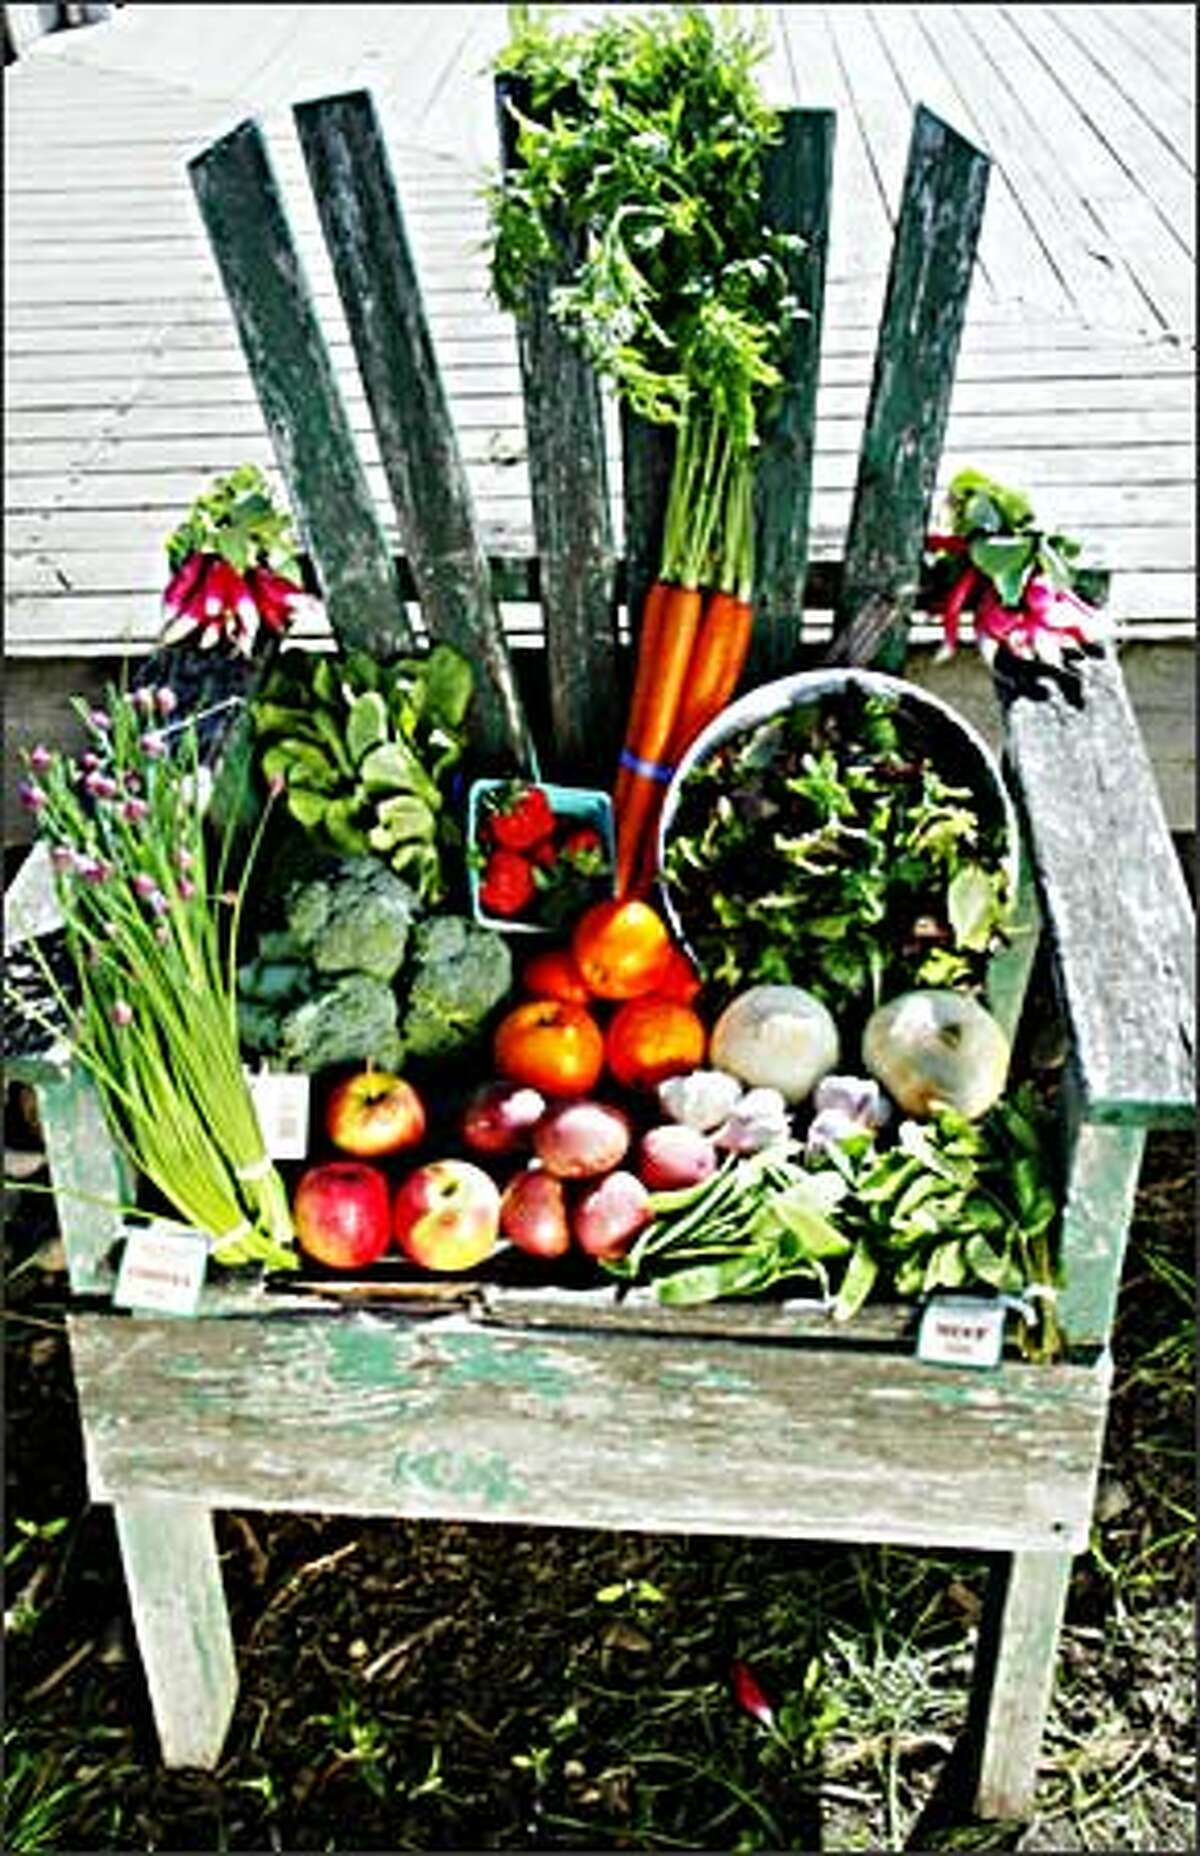 A sampling of the produce Full Circle Farm provides to its community- supported agriculture, or CSA, customers, who get a box of organic goodies weekly.